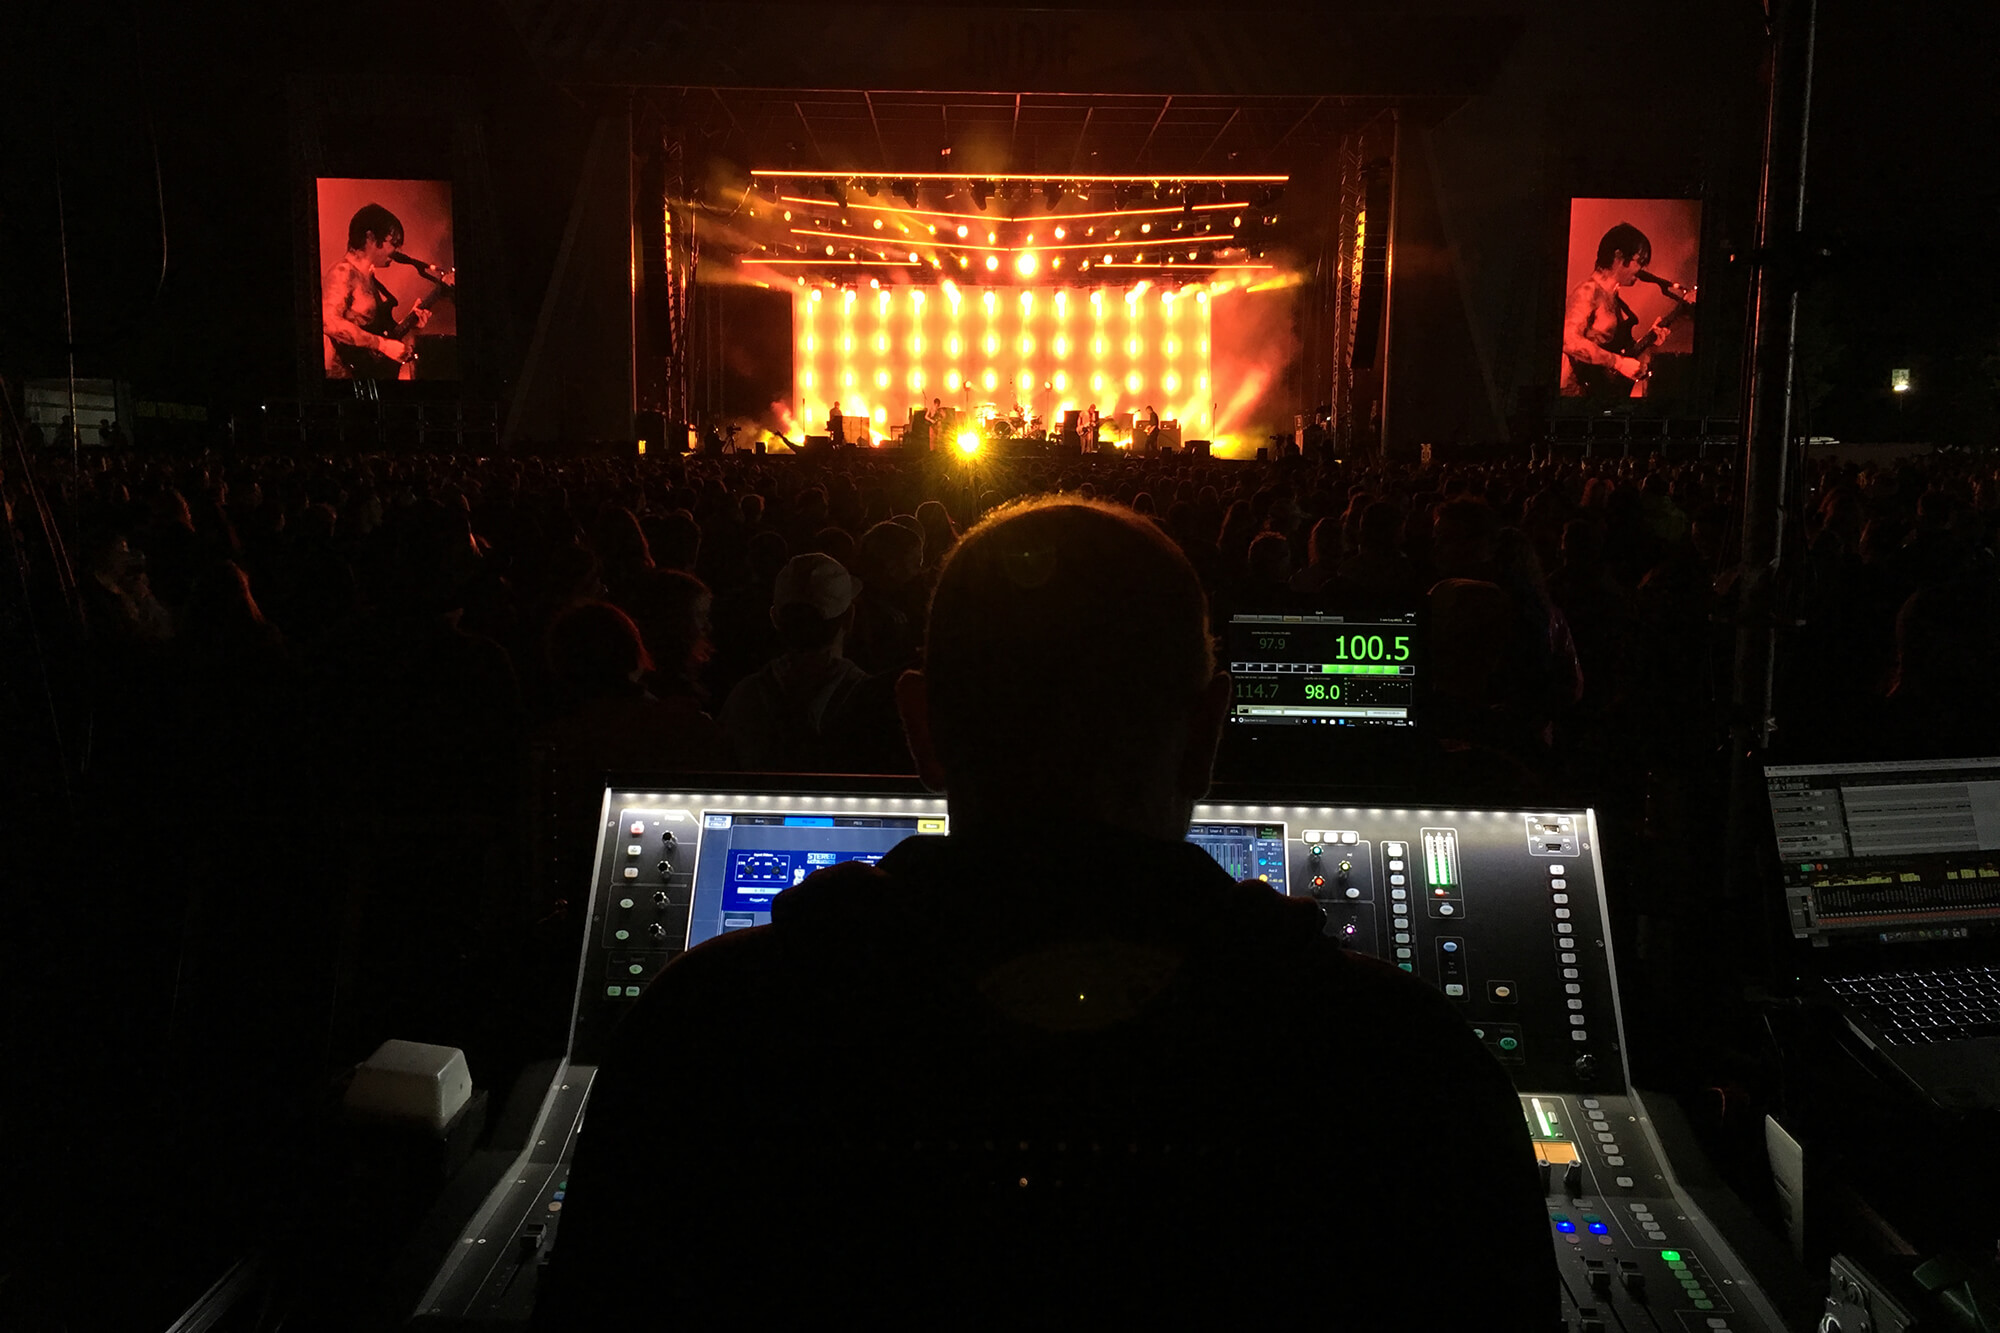 An engineer operating a sound and light desk at a live event.